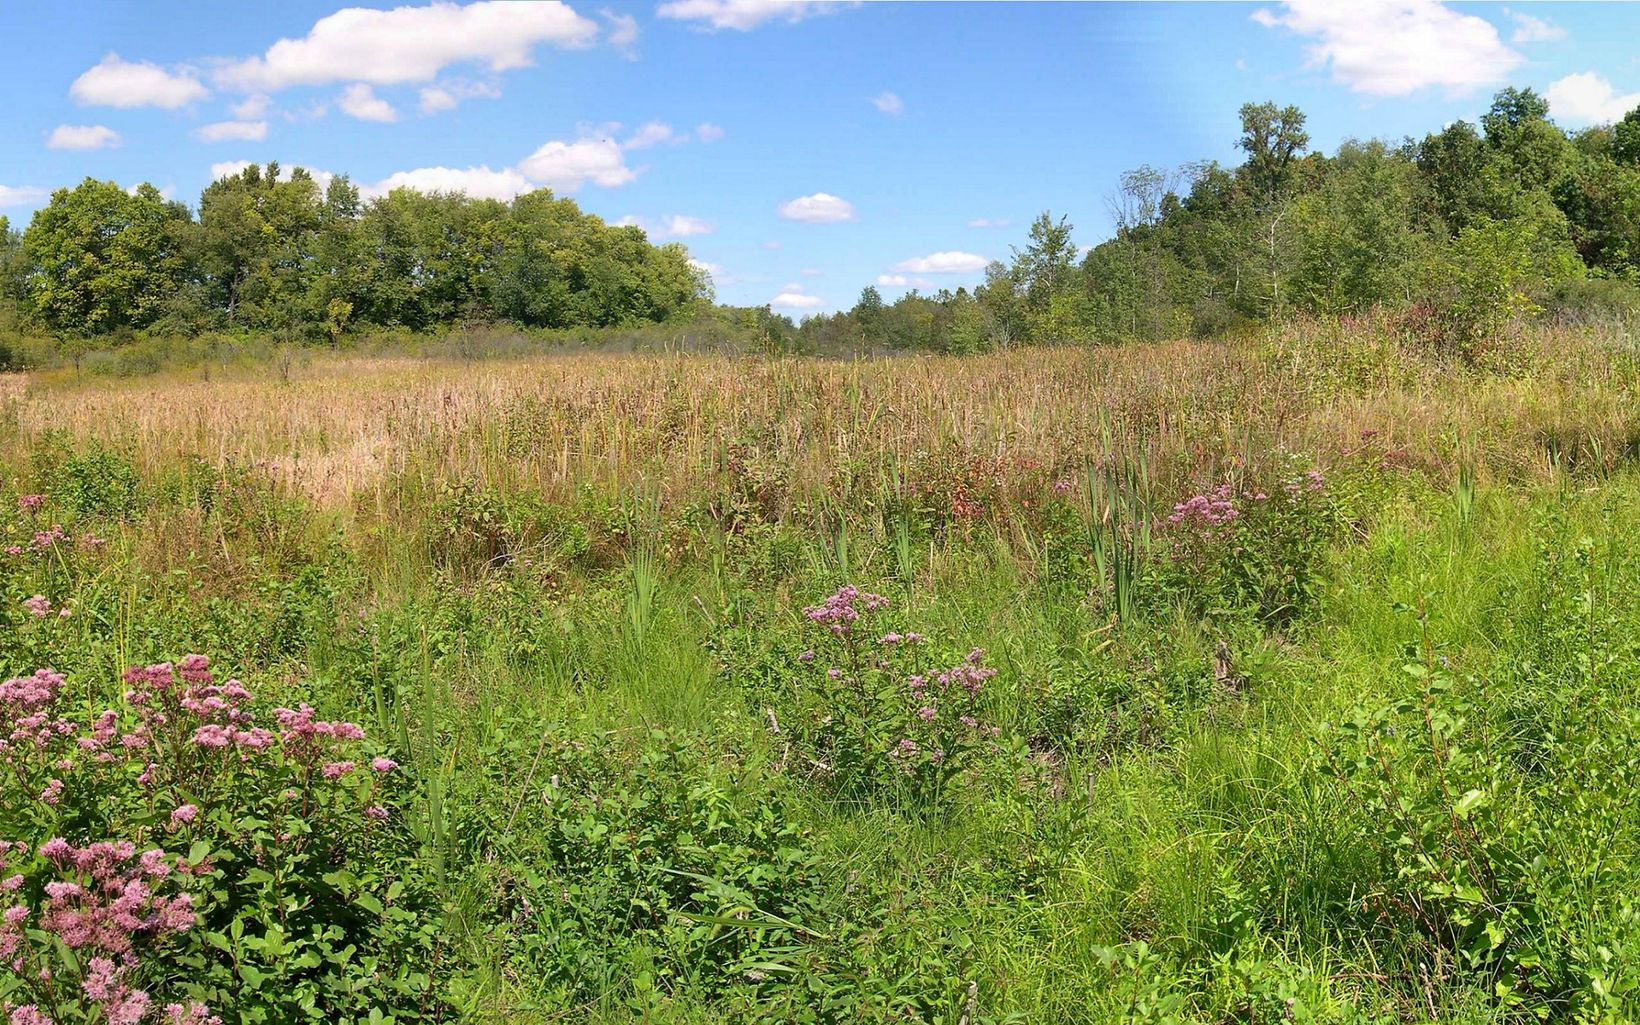 An alkaline spring-fed prairie blends into a floodplain forest to create a globally significant fen habitat at Ives Road Fen Preserve.